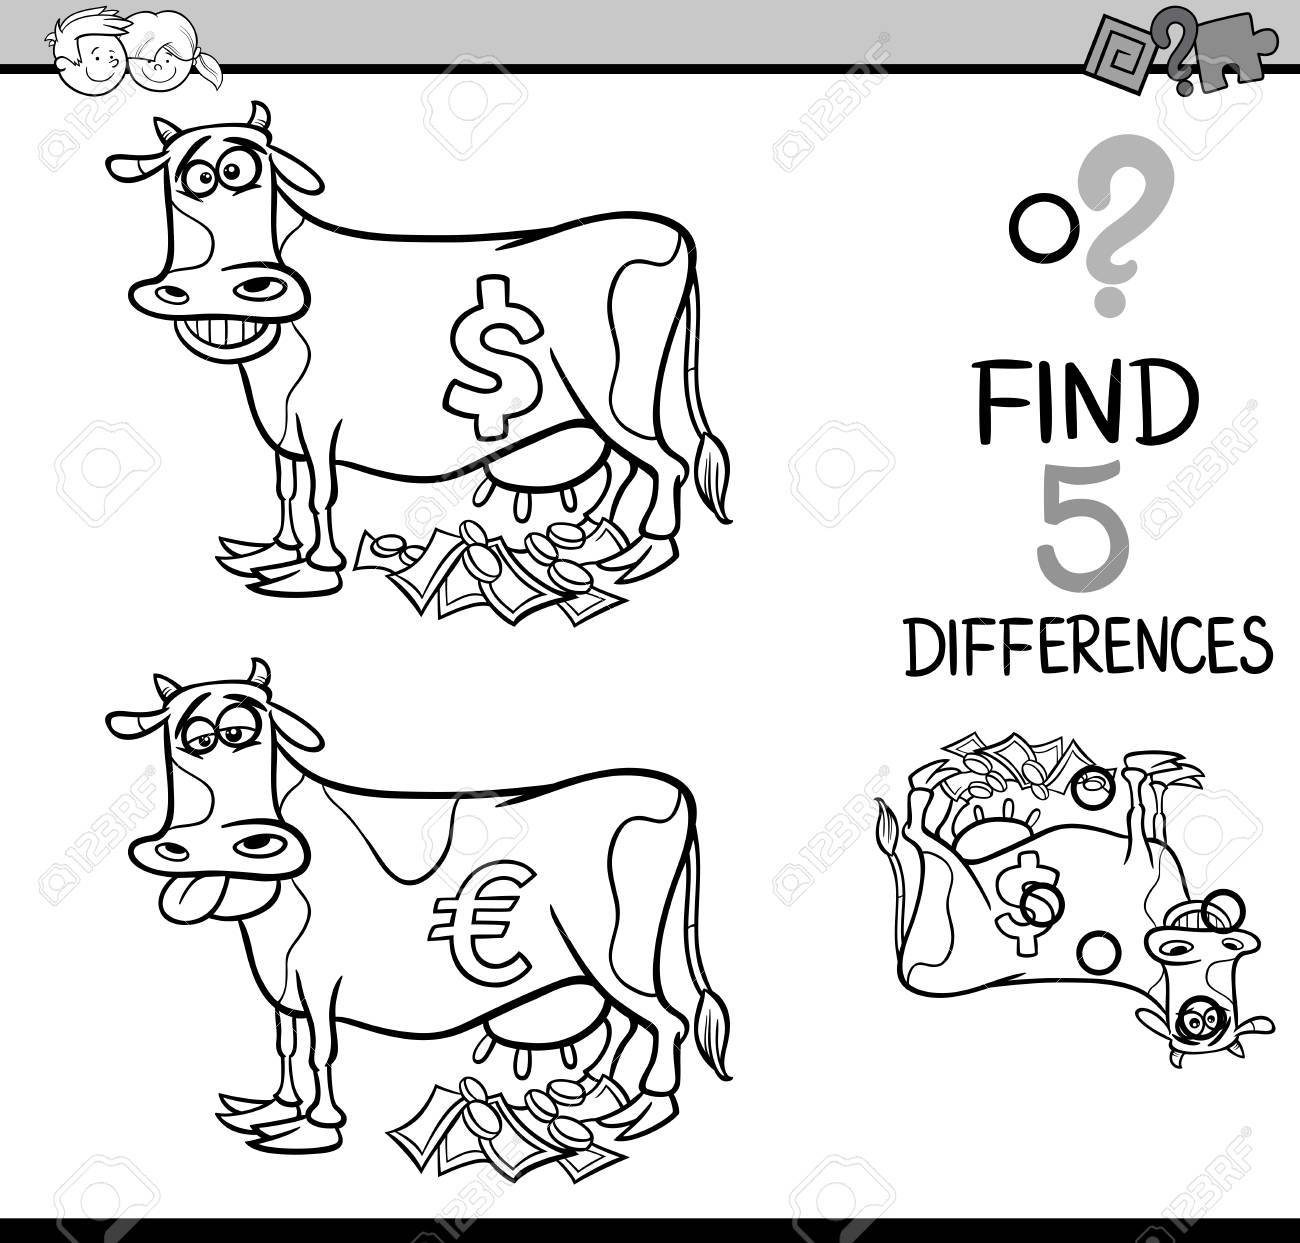 Black And White Cartoon Illustration Of Finding Differences ...